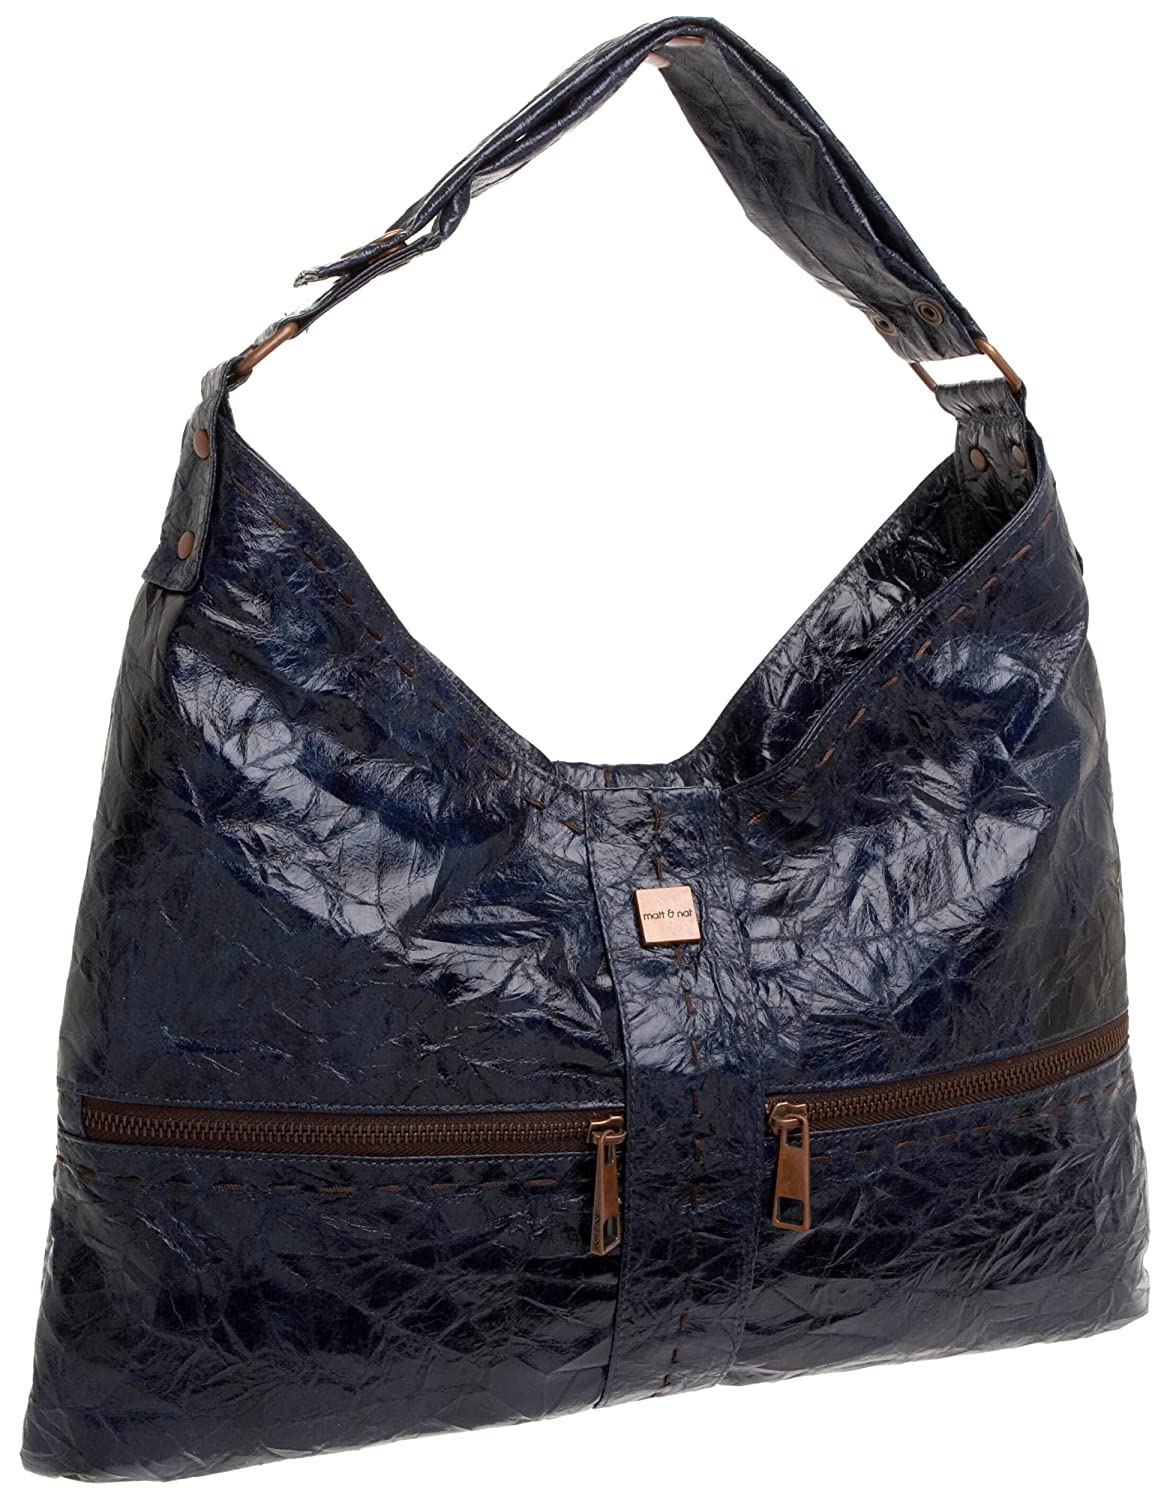 Endless.com: Matt & Nat Vicious Shoulder Bag: Oversized Bags - Free Overnight Shipping & Return Shipping